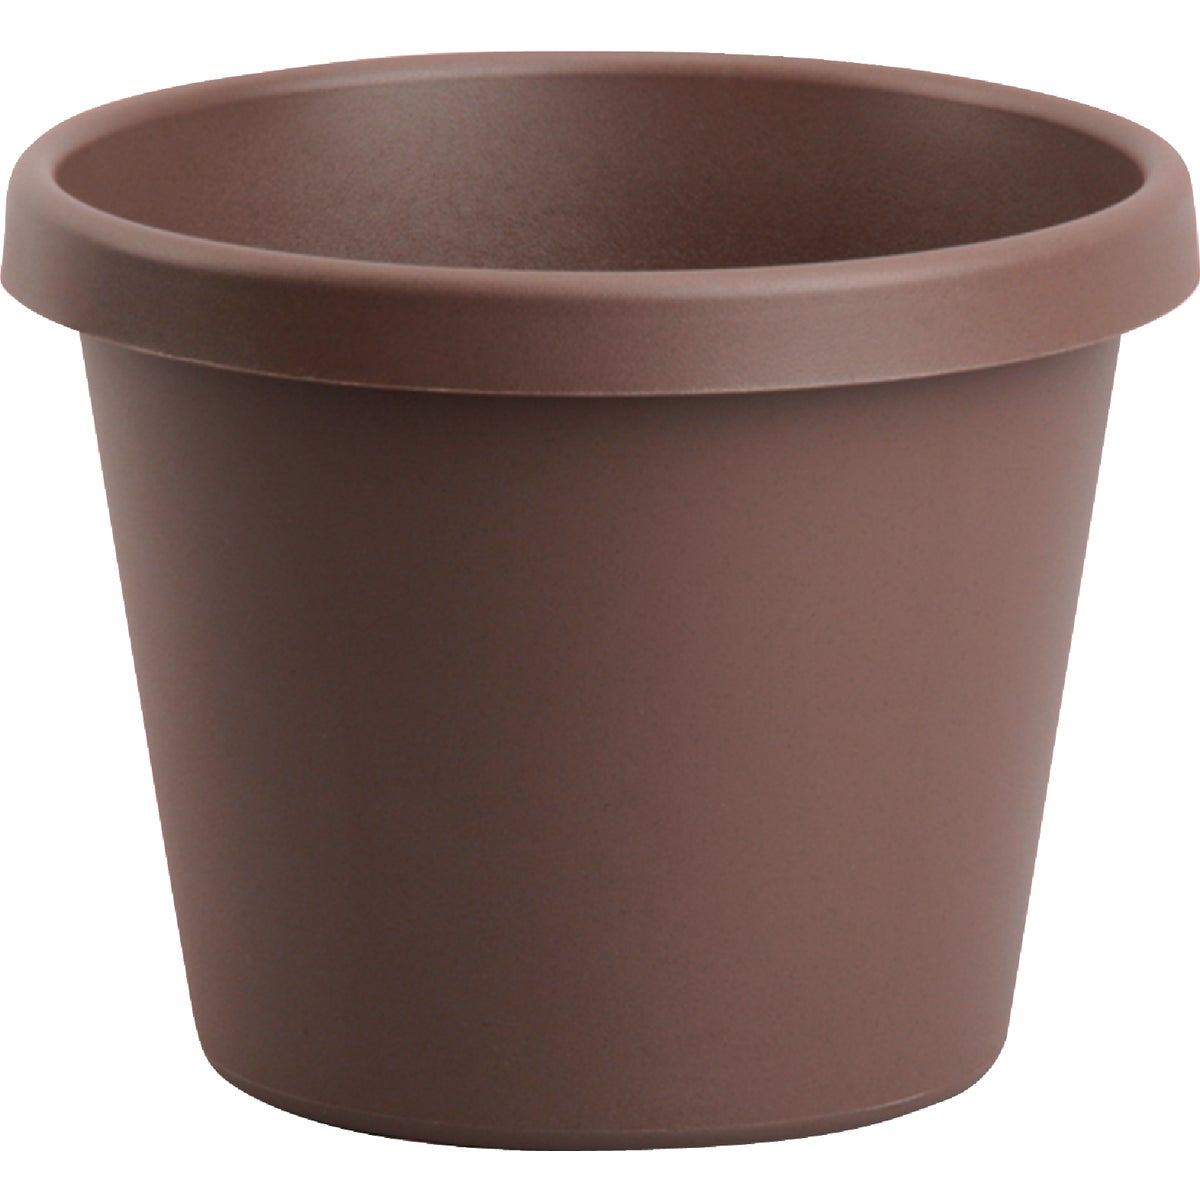 "16"" CHOCOLATE POLY POT - 50316 by Fiskars Brands Inc"